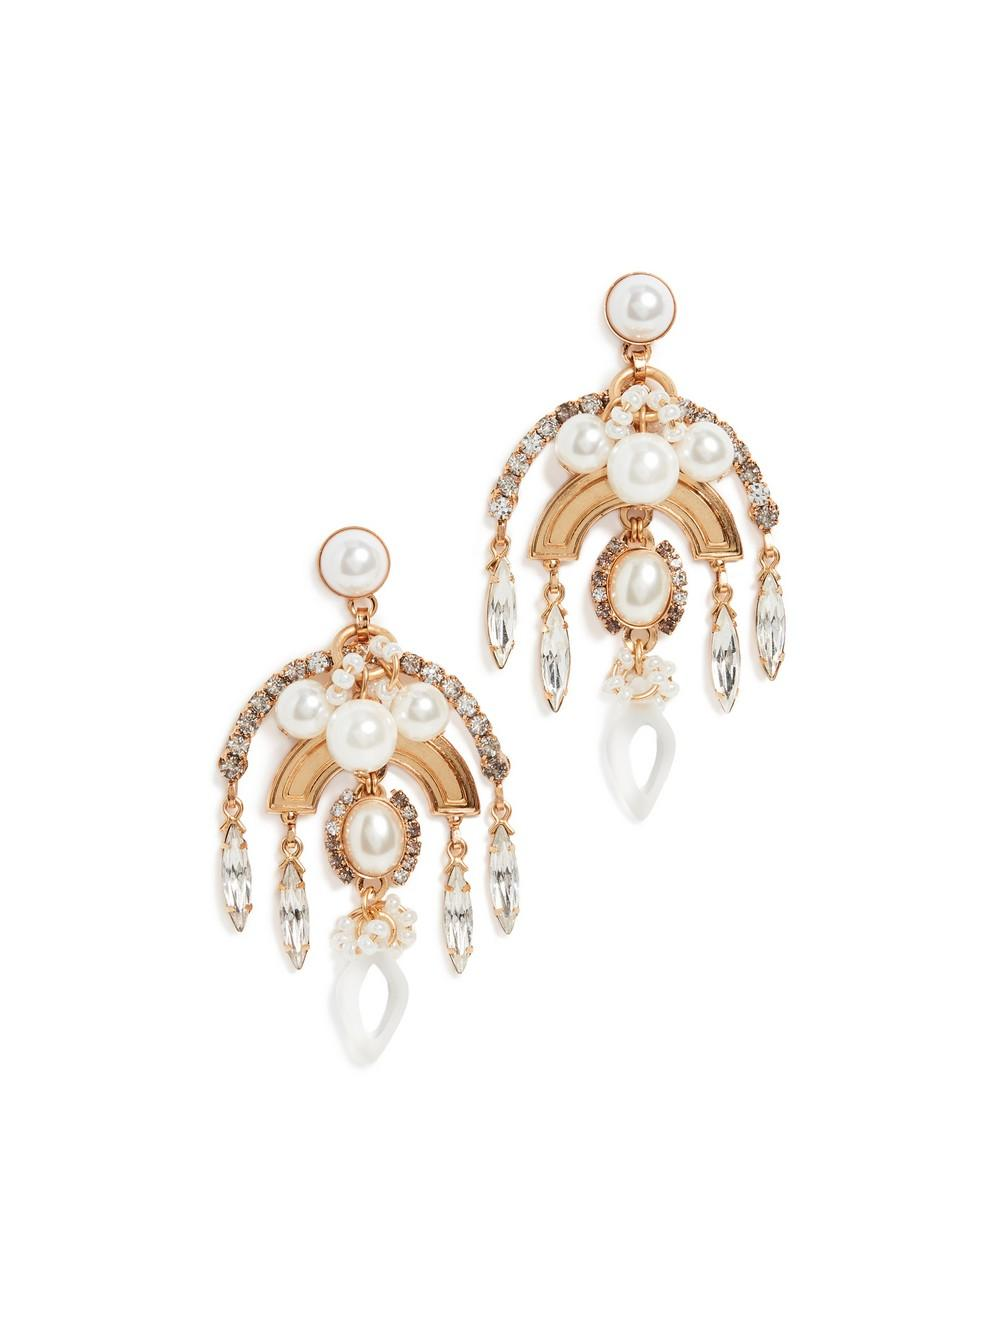 Danna Earrings